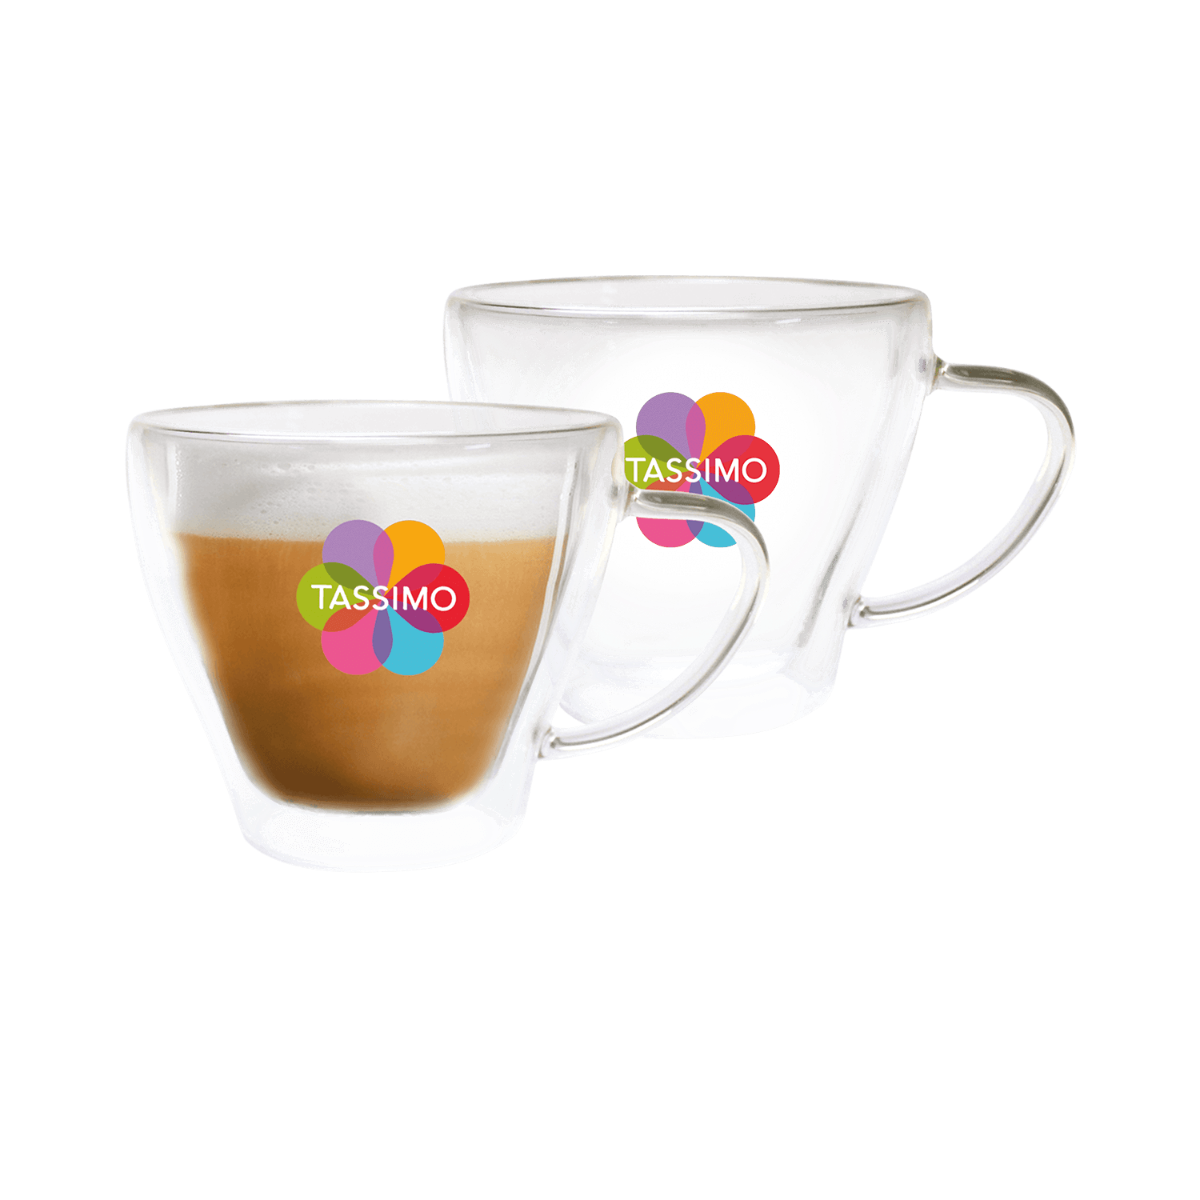 TASSIMO Cappuccino Glasses, pack of 2